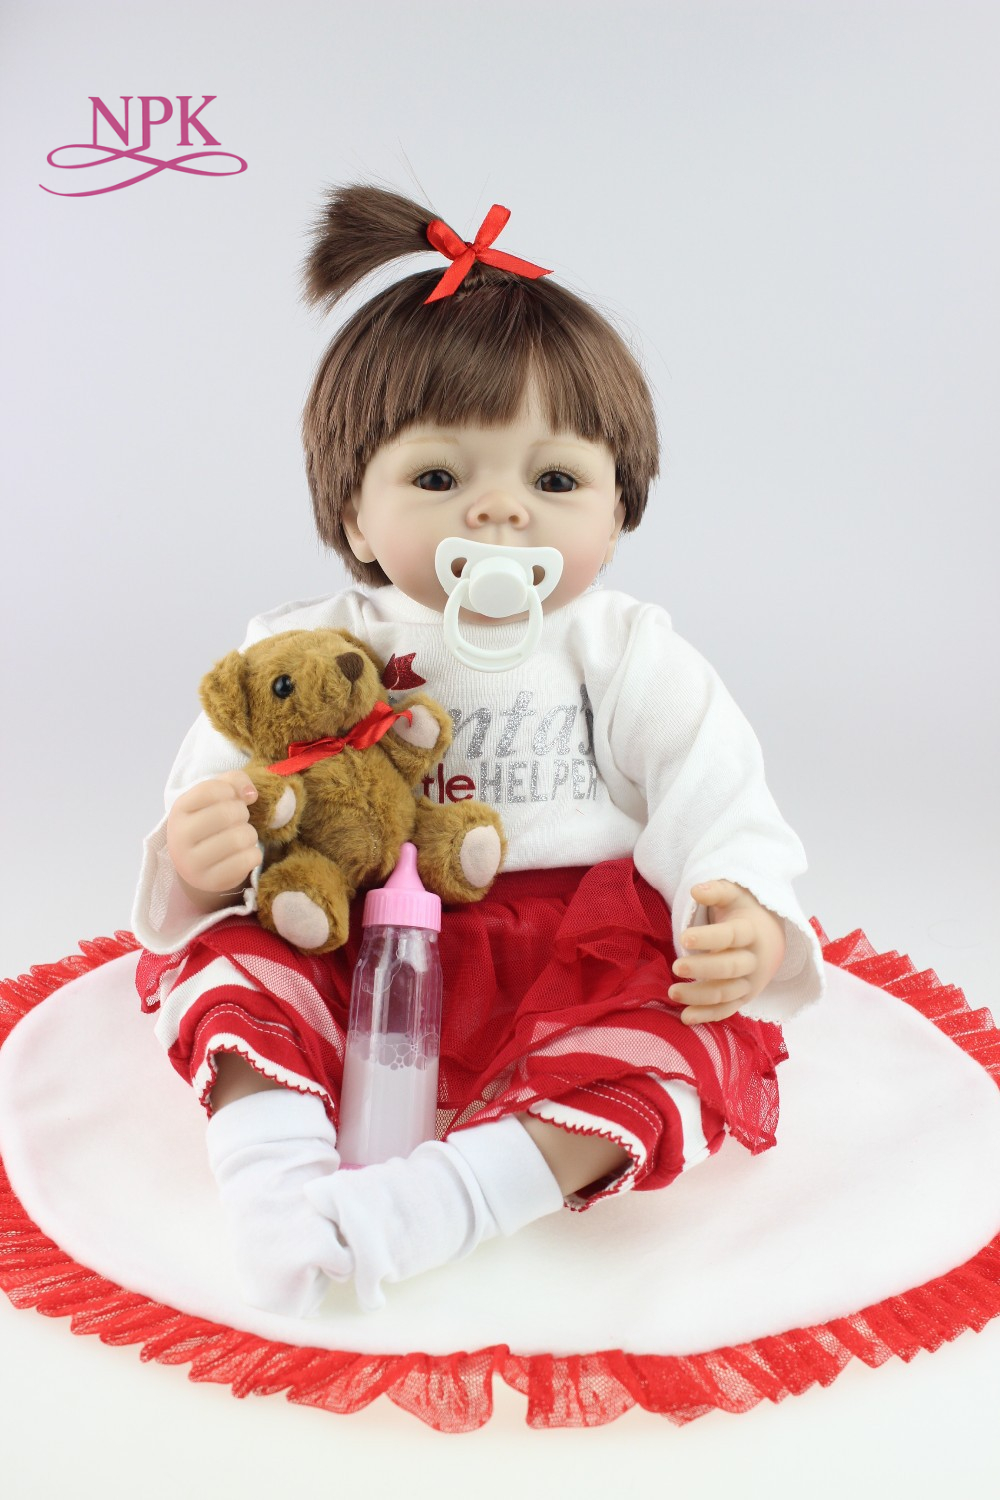 NPK Reborn Baby Doll Realistic Soft silicone Reborn Babies gifts for Girls 18 Inch Adorable Bebe Kids Brinquedos boneca Toys 50cm reborn baby doll realistic soft silicone reborn babies girl bebe kids brinquedos kids birthday gifts